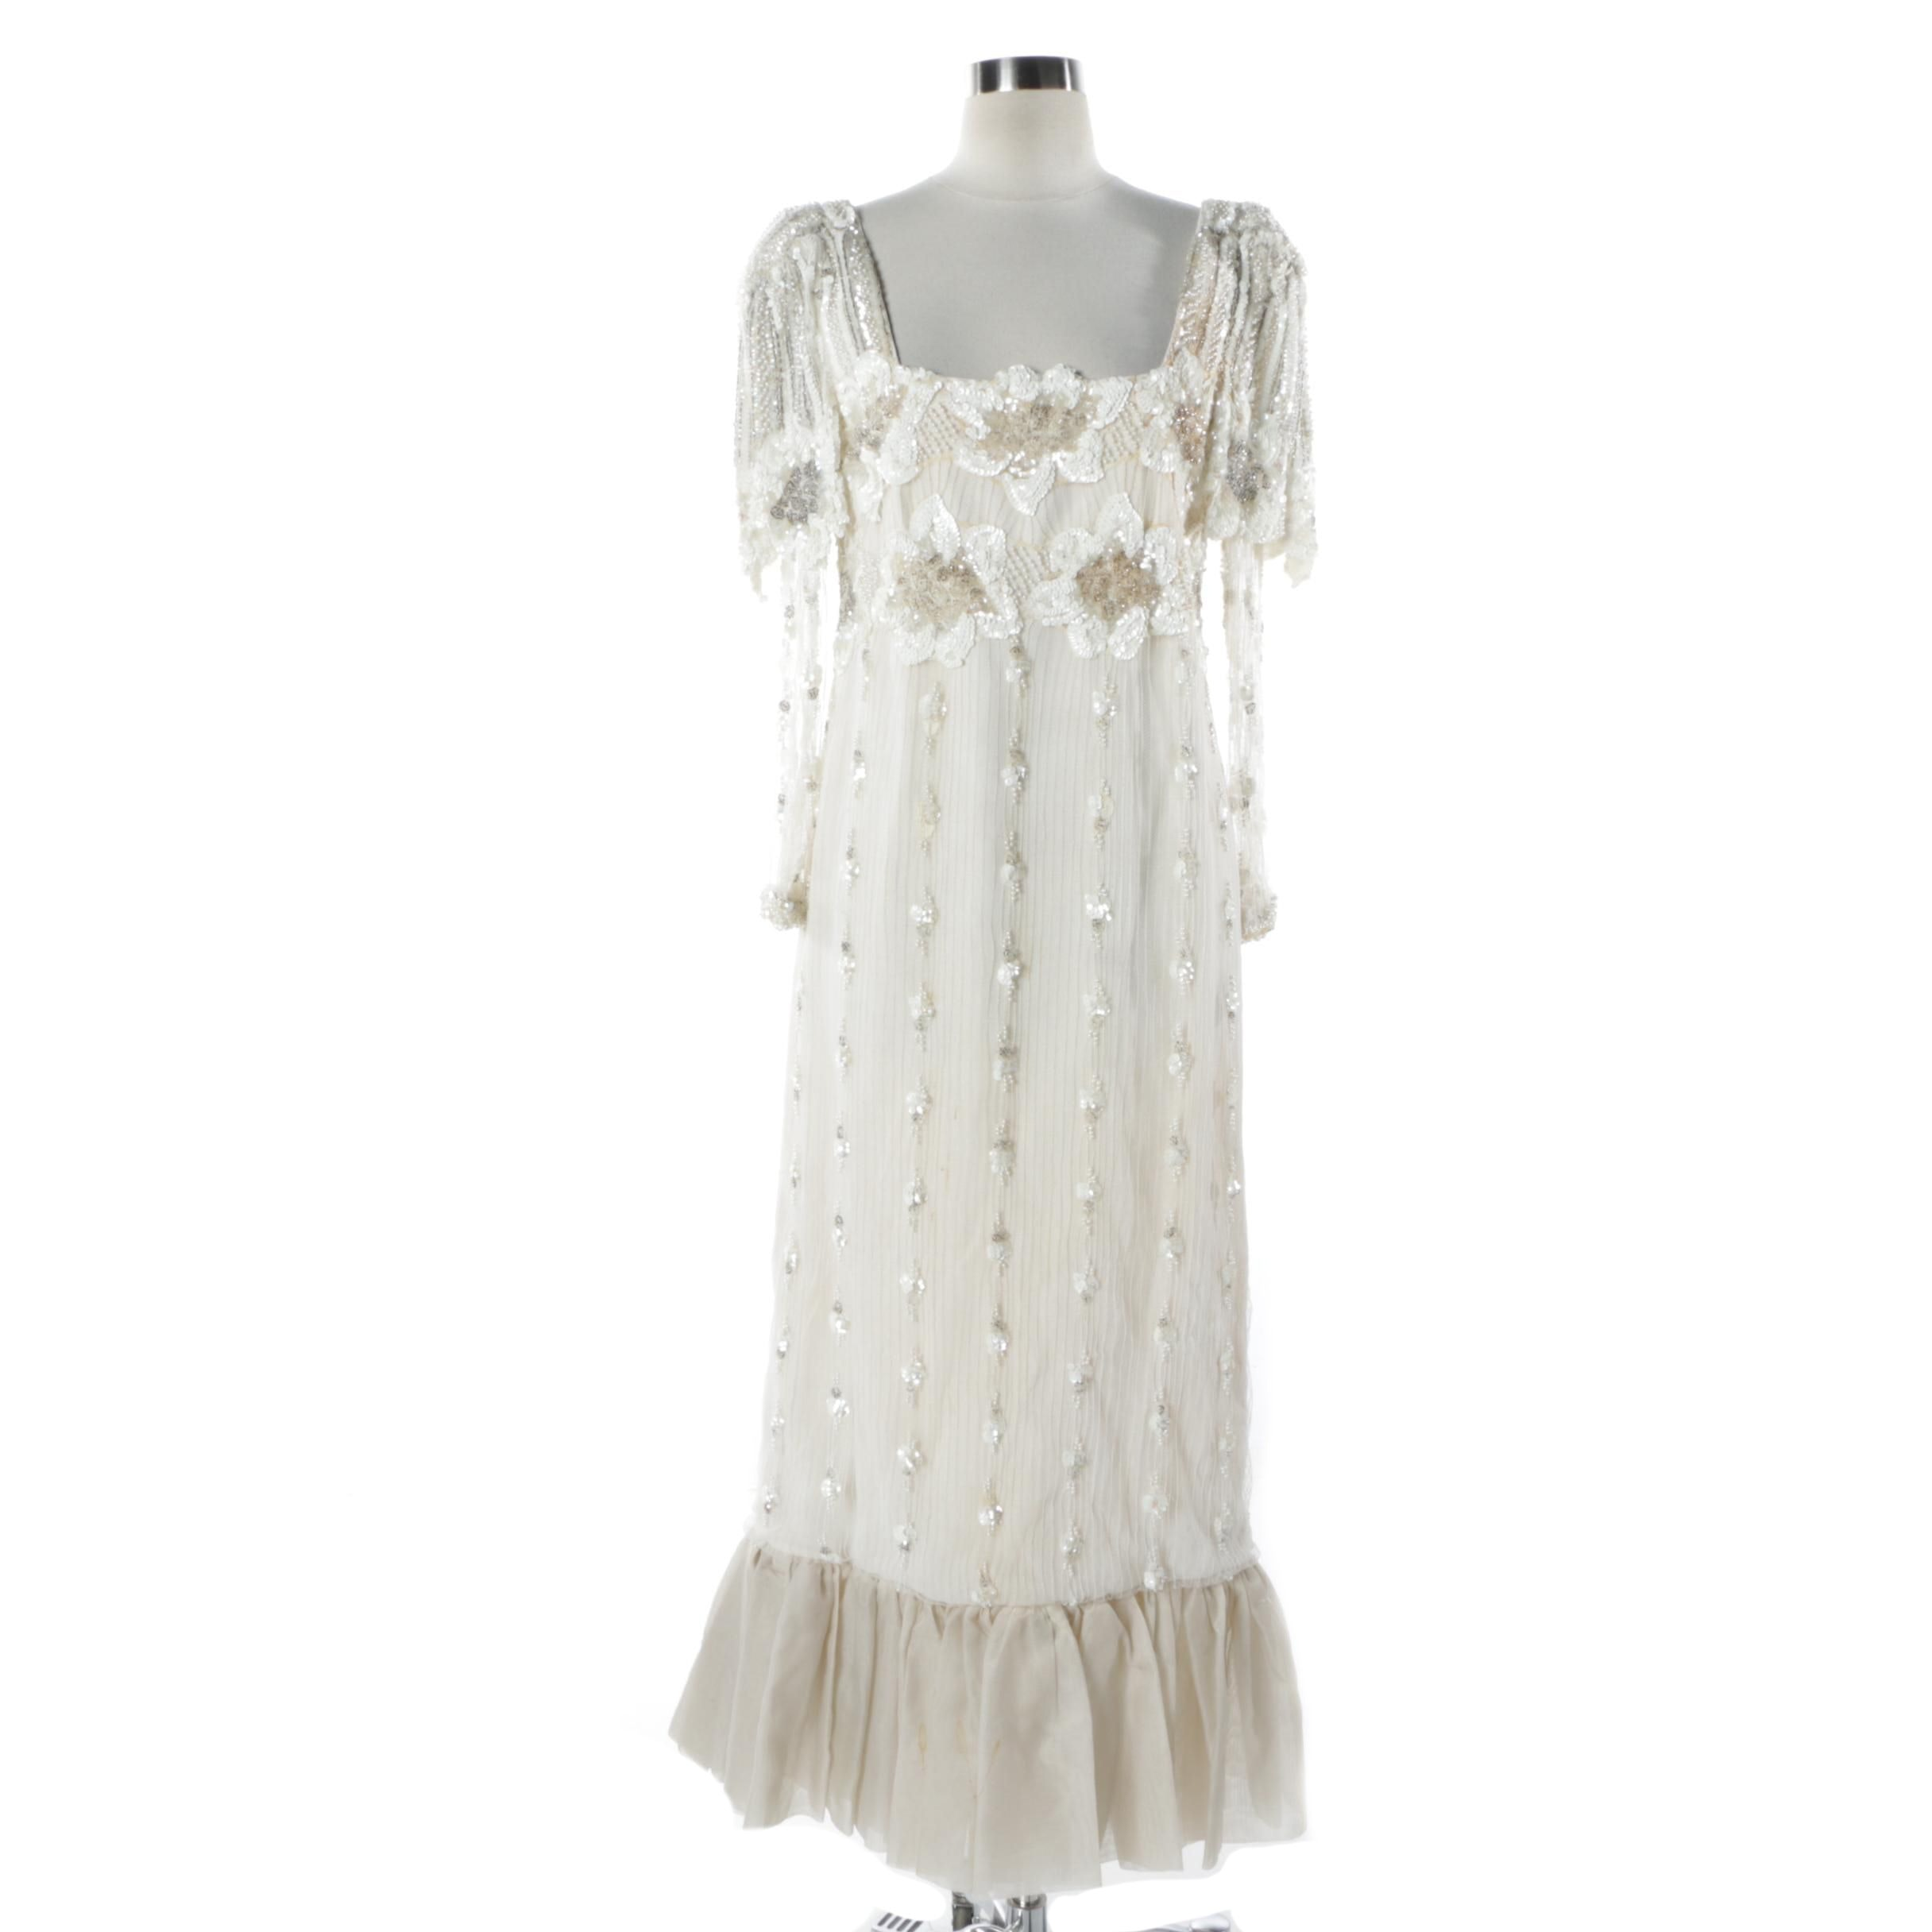 Vintage Handmade Sequined and Beaded Dress